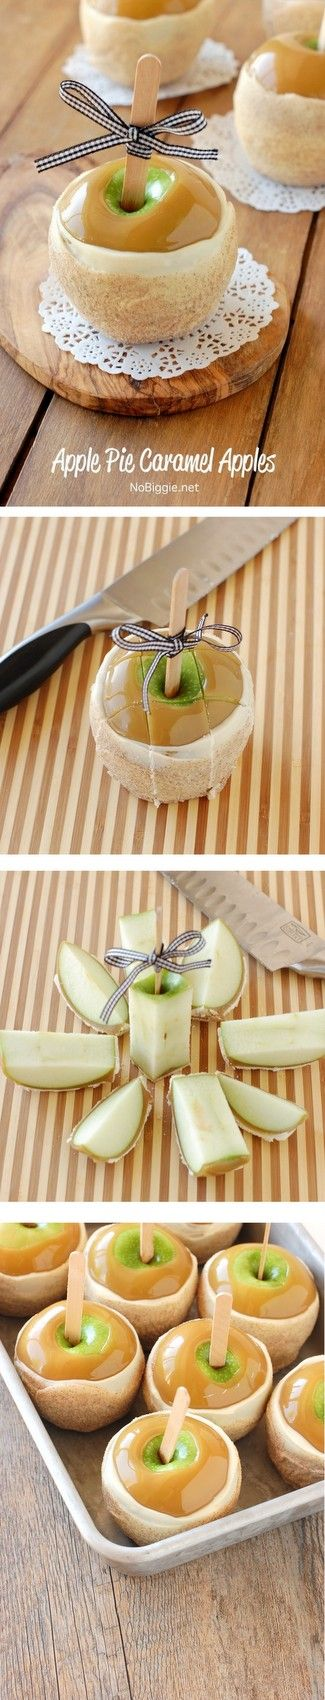 Apple Pie Caramel Apples - easier than you think to make at home...plus how to cut them! Recipe on NoBiggie.net